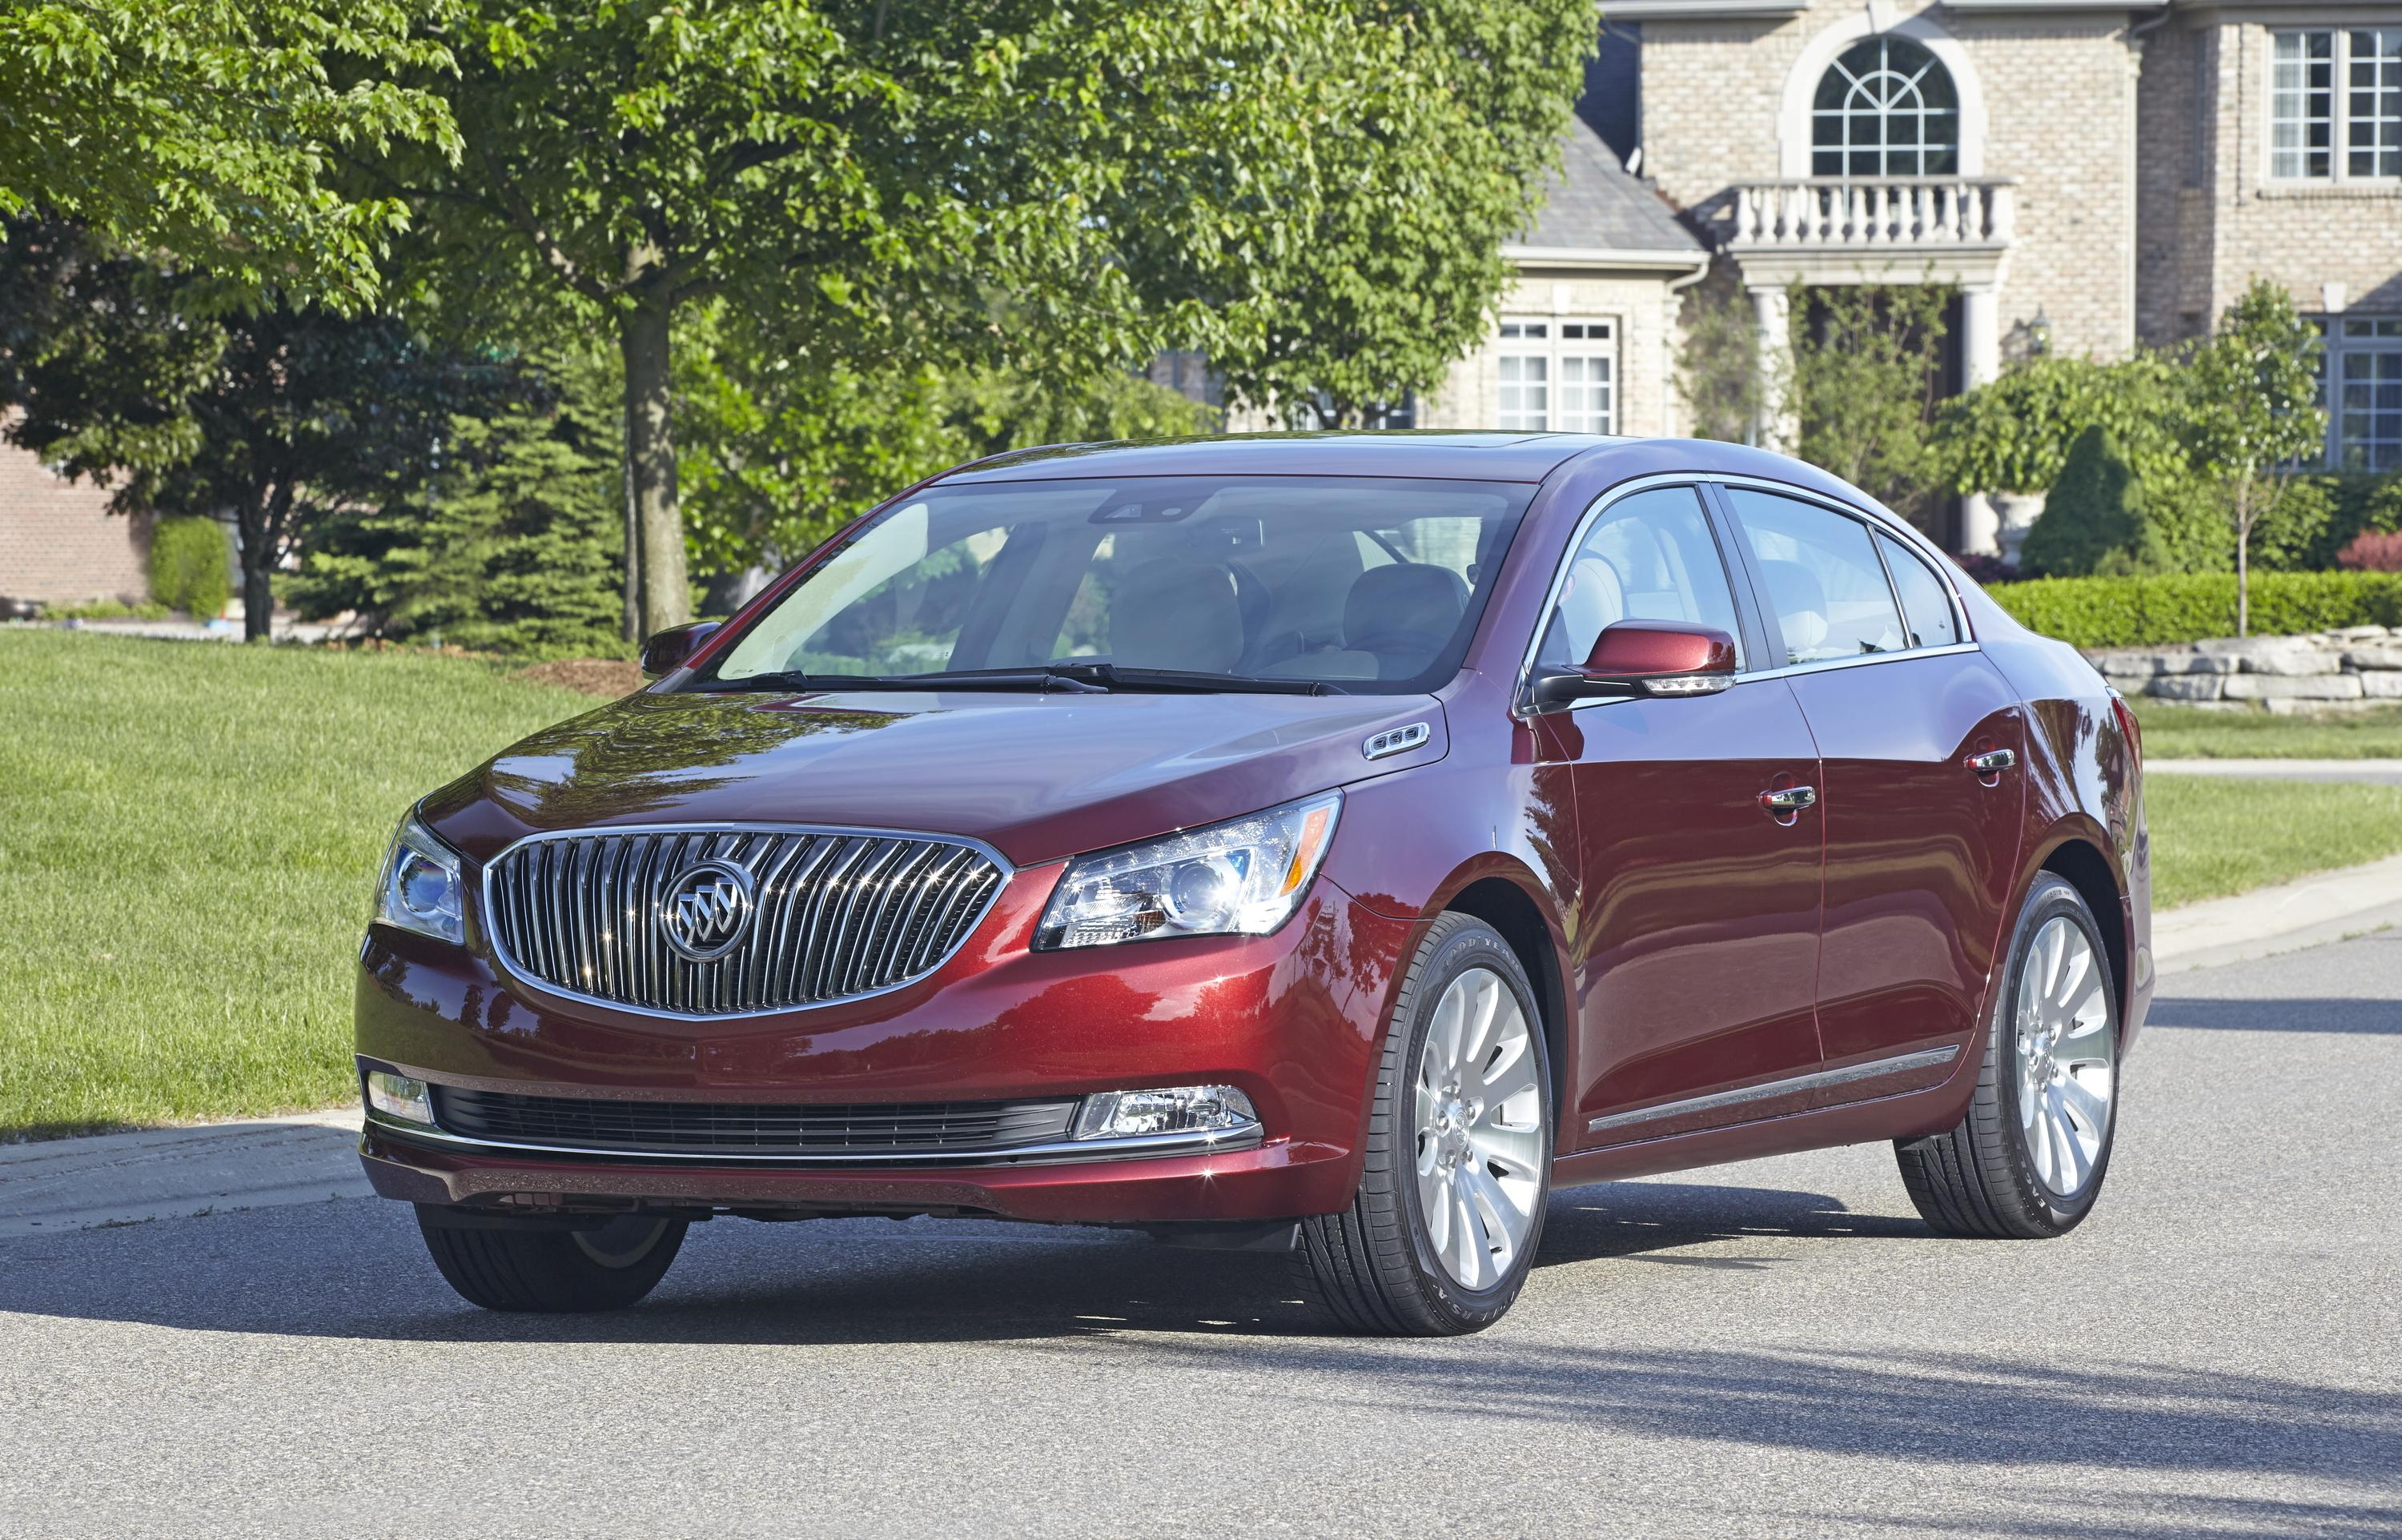 Buick LaCrosse: What Will You See after an Airbag Inflates